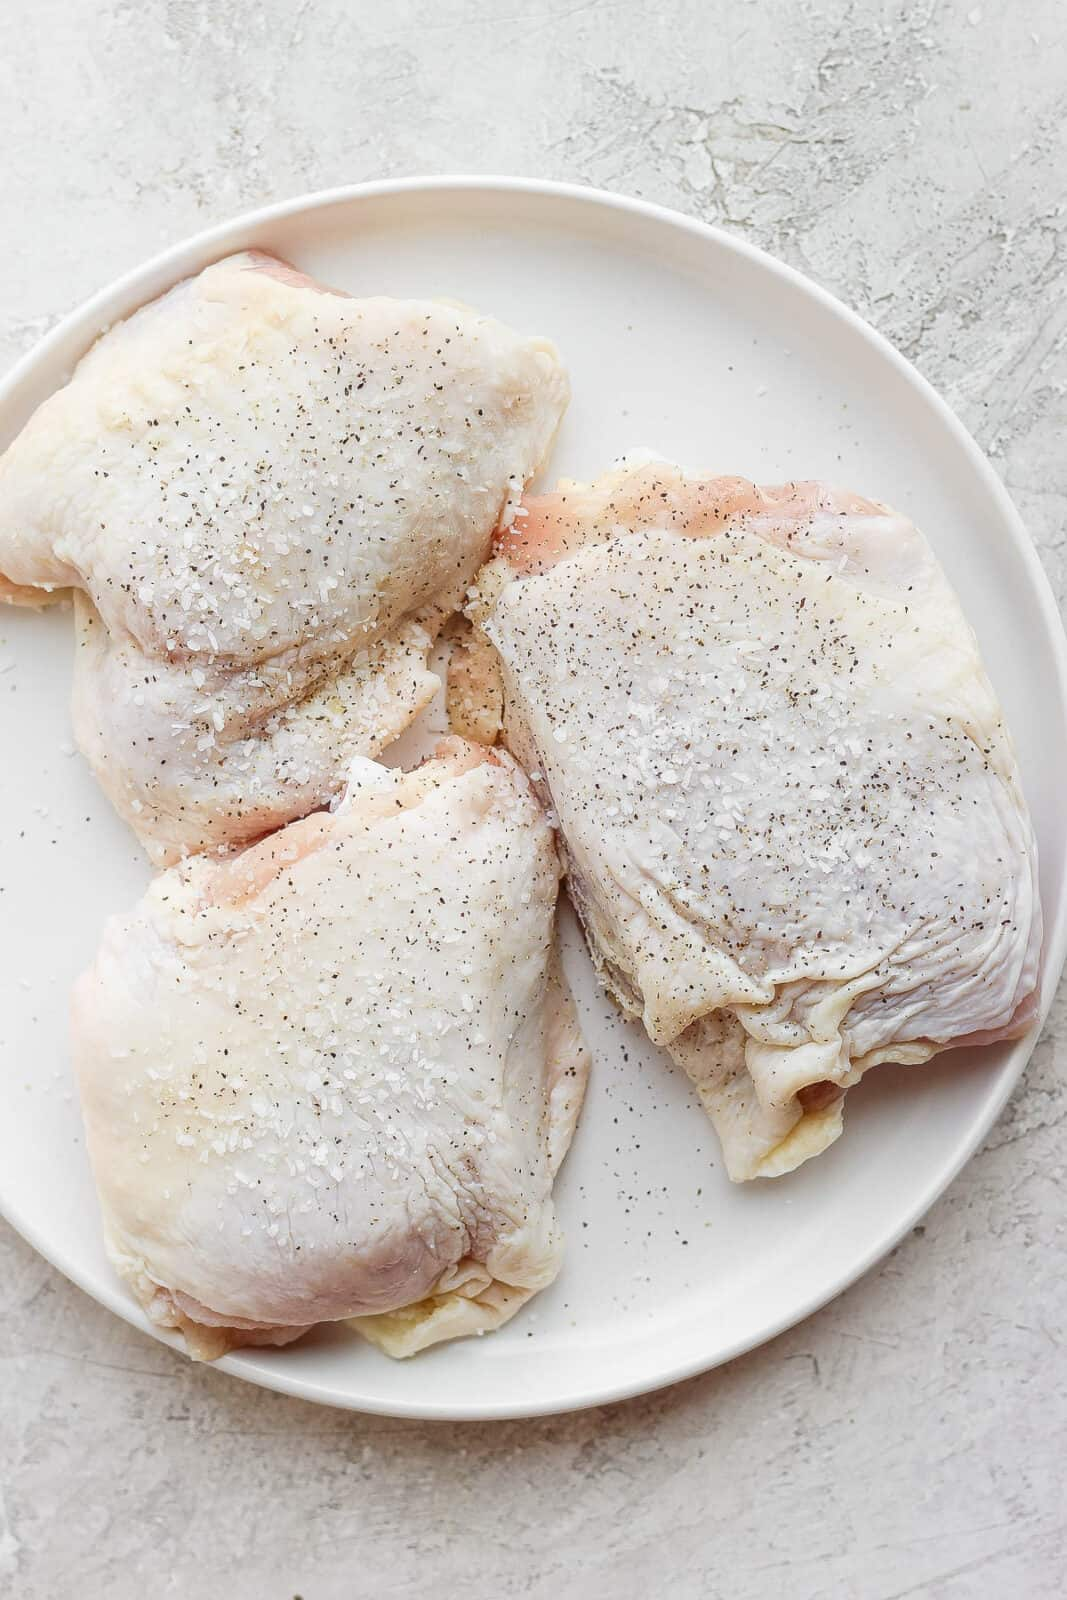 Raw chicken thighs seasoned and on a plate.